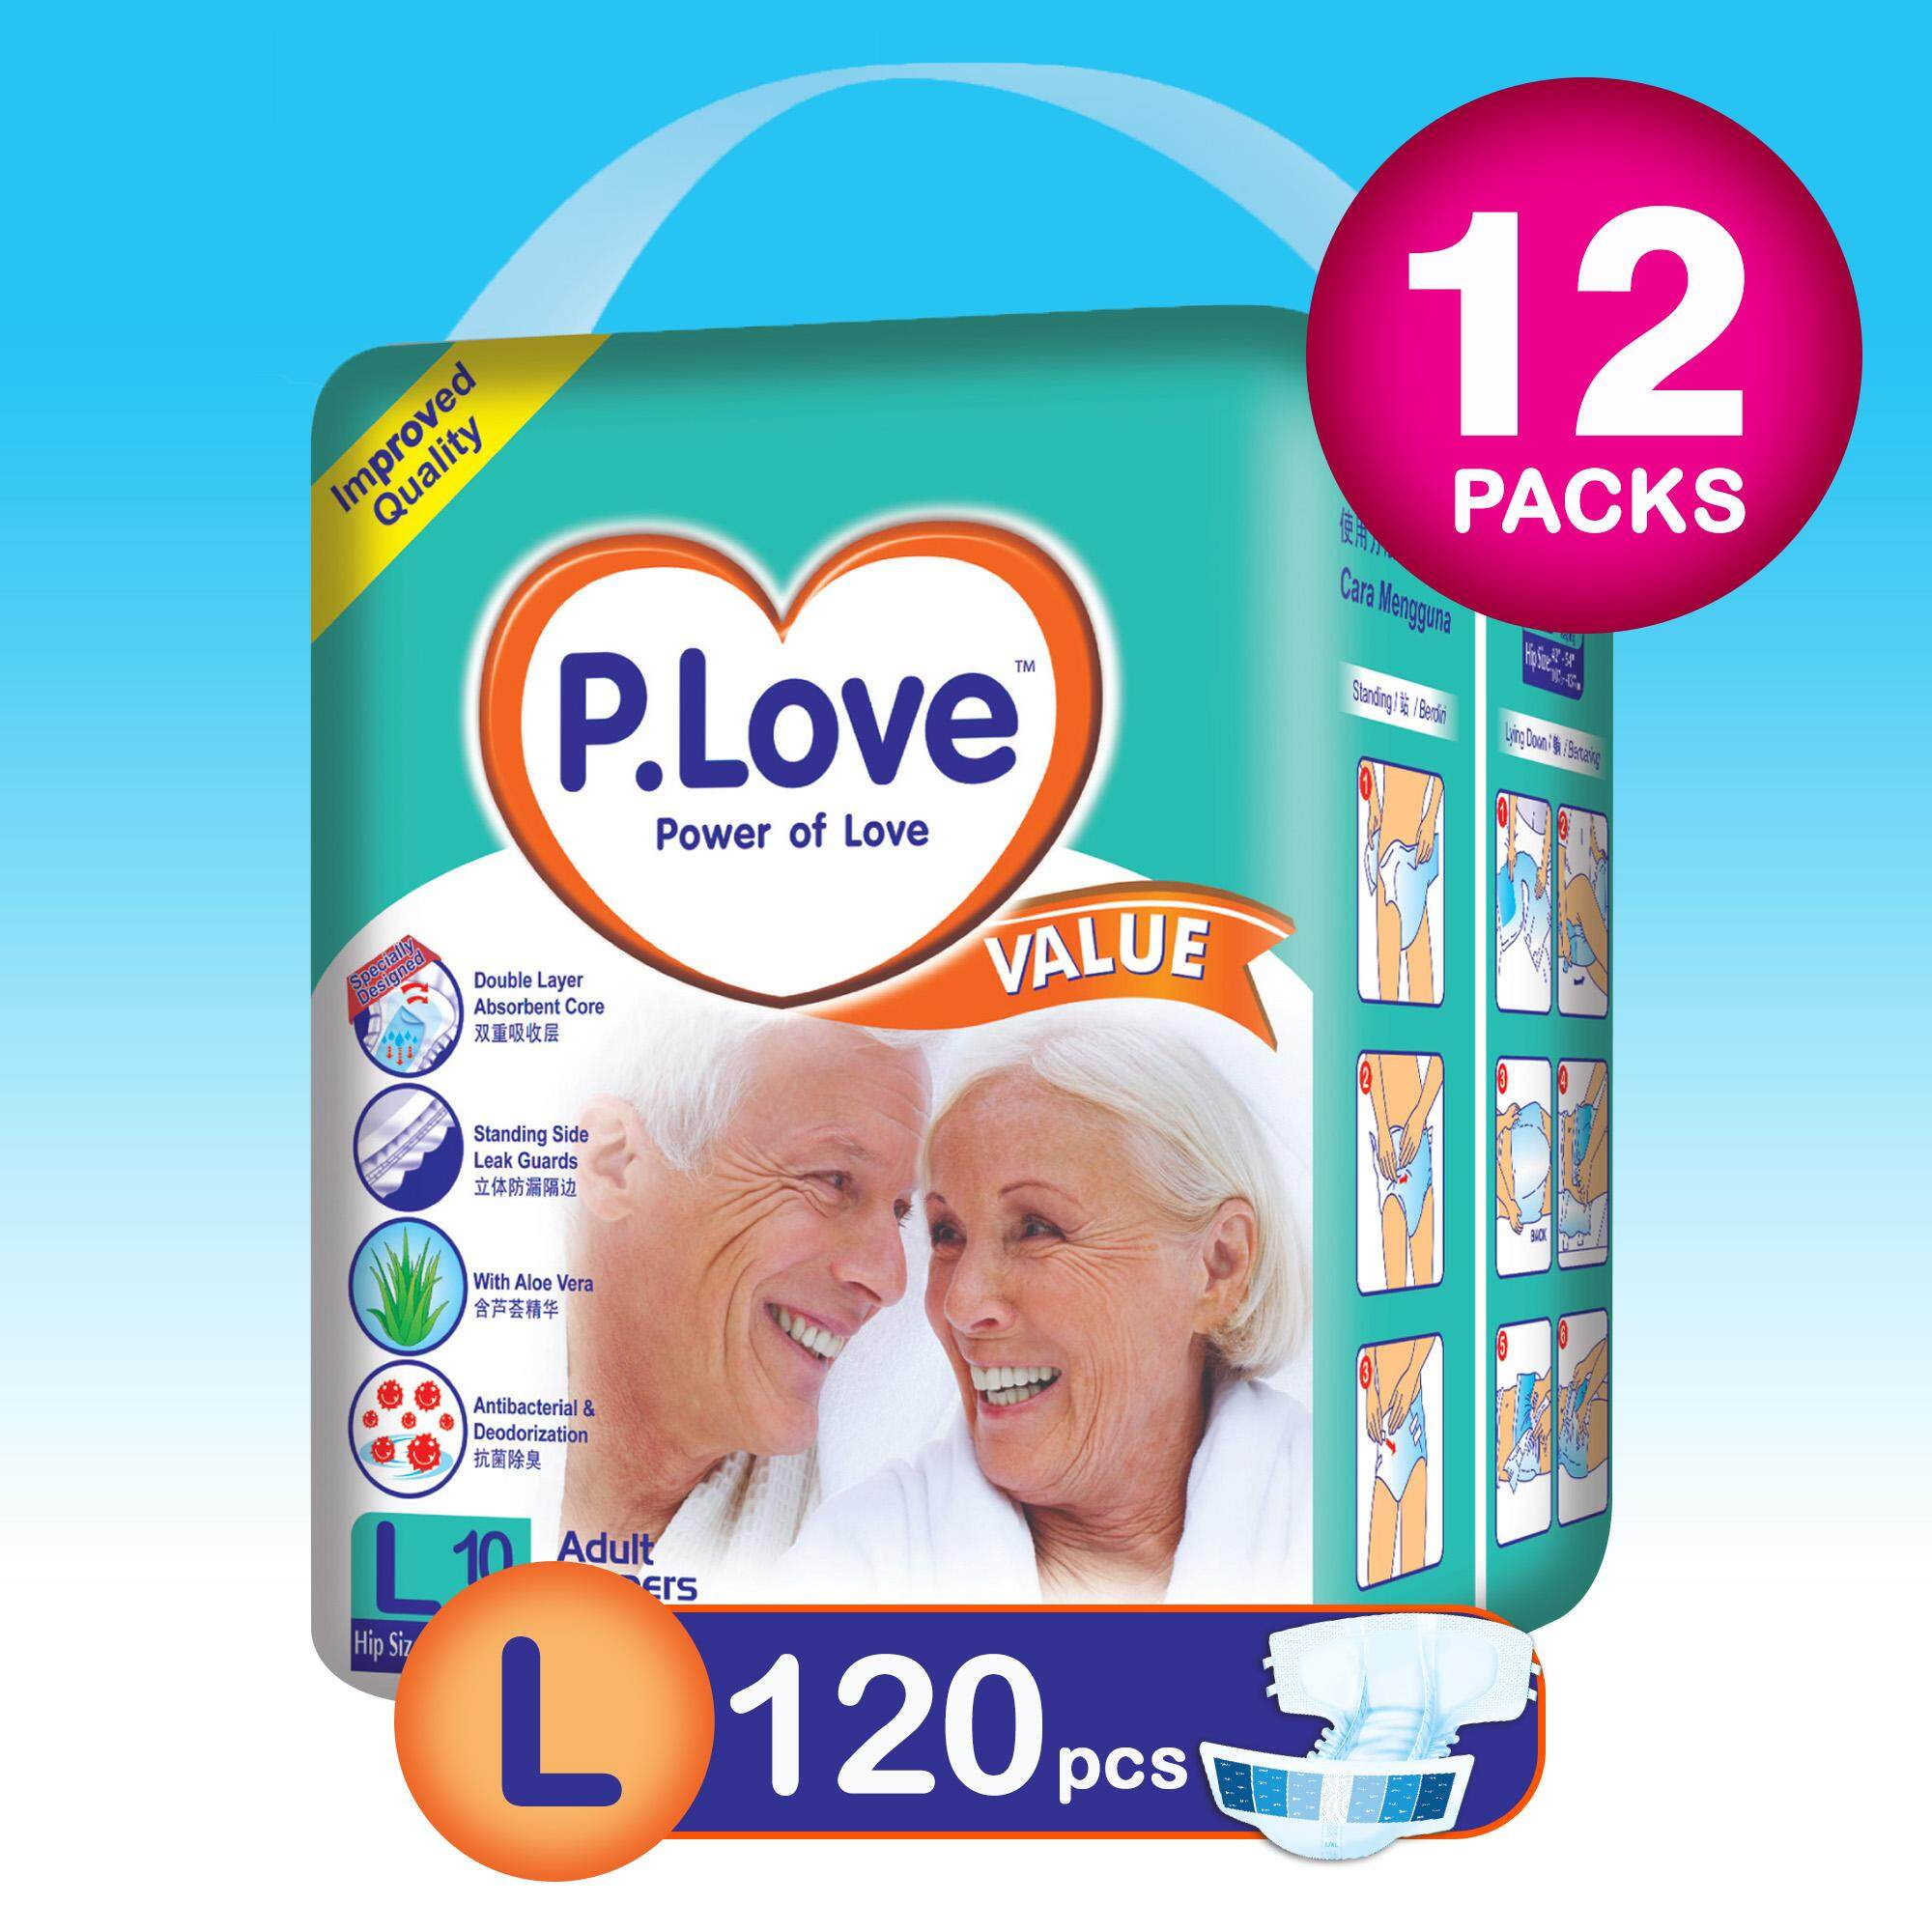 Elderly Care Products For The Best Price In Malaysia Bagus Underpad L Plove Value Adult Tape Diapers L10 X 12 Packs Wangzheng